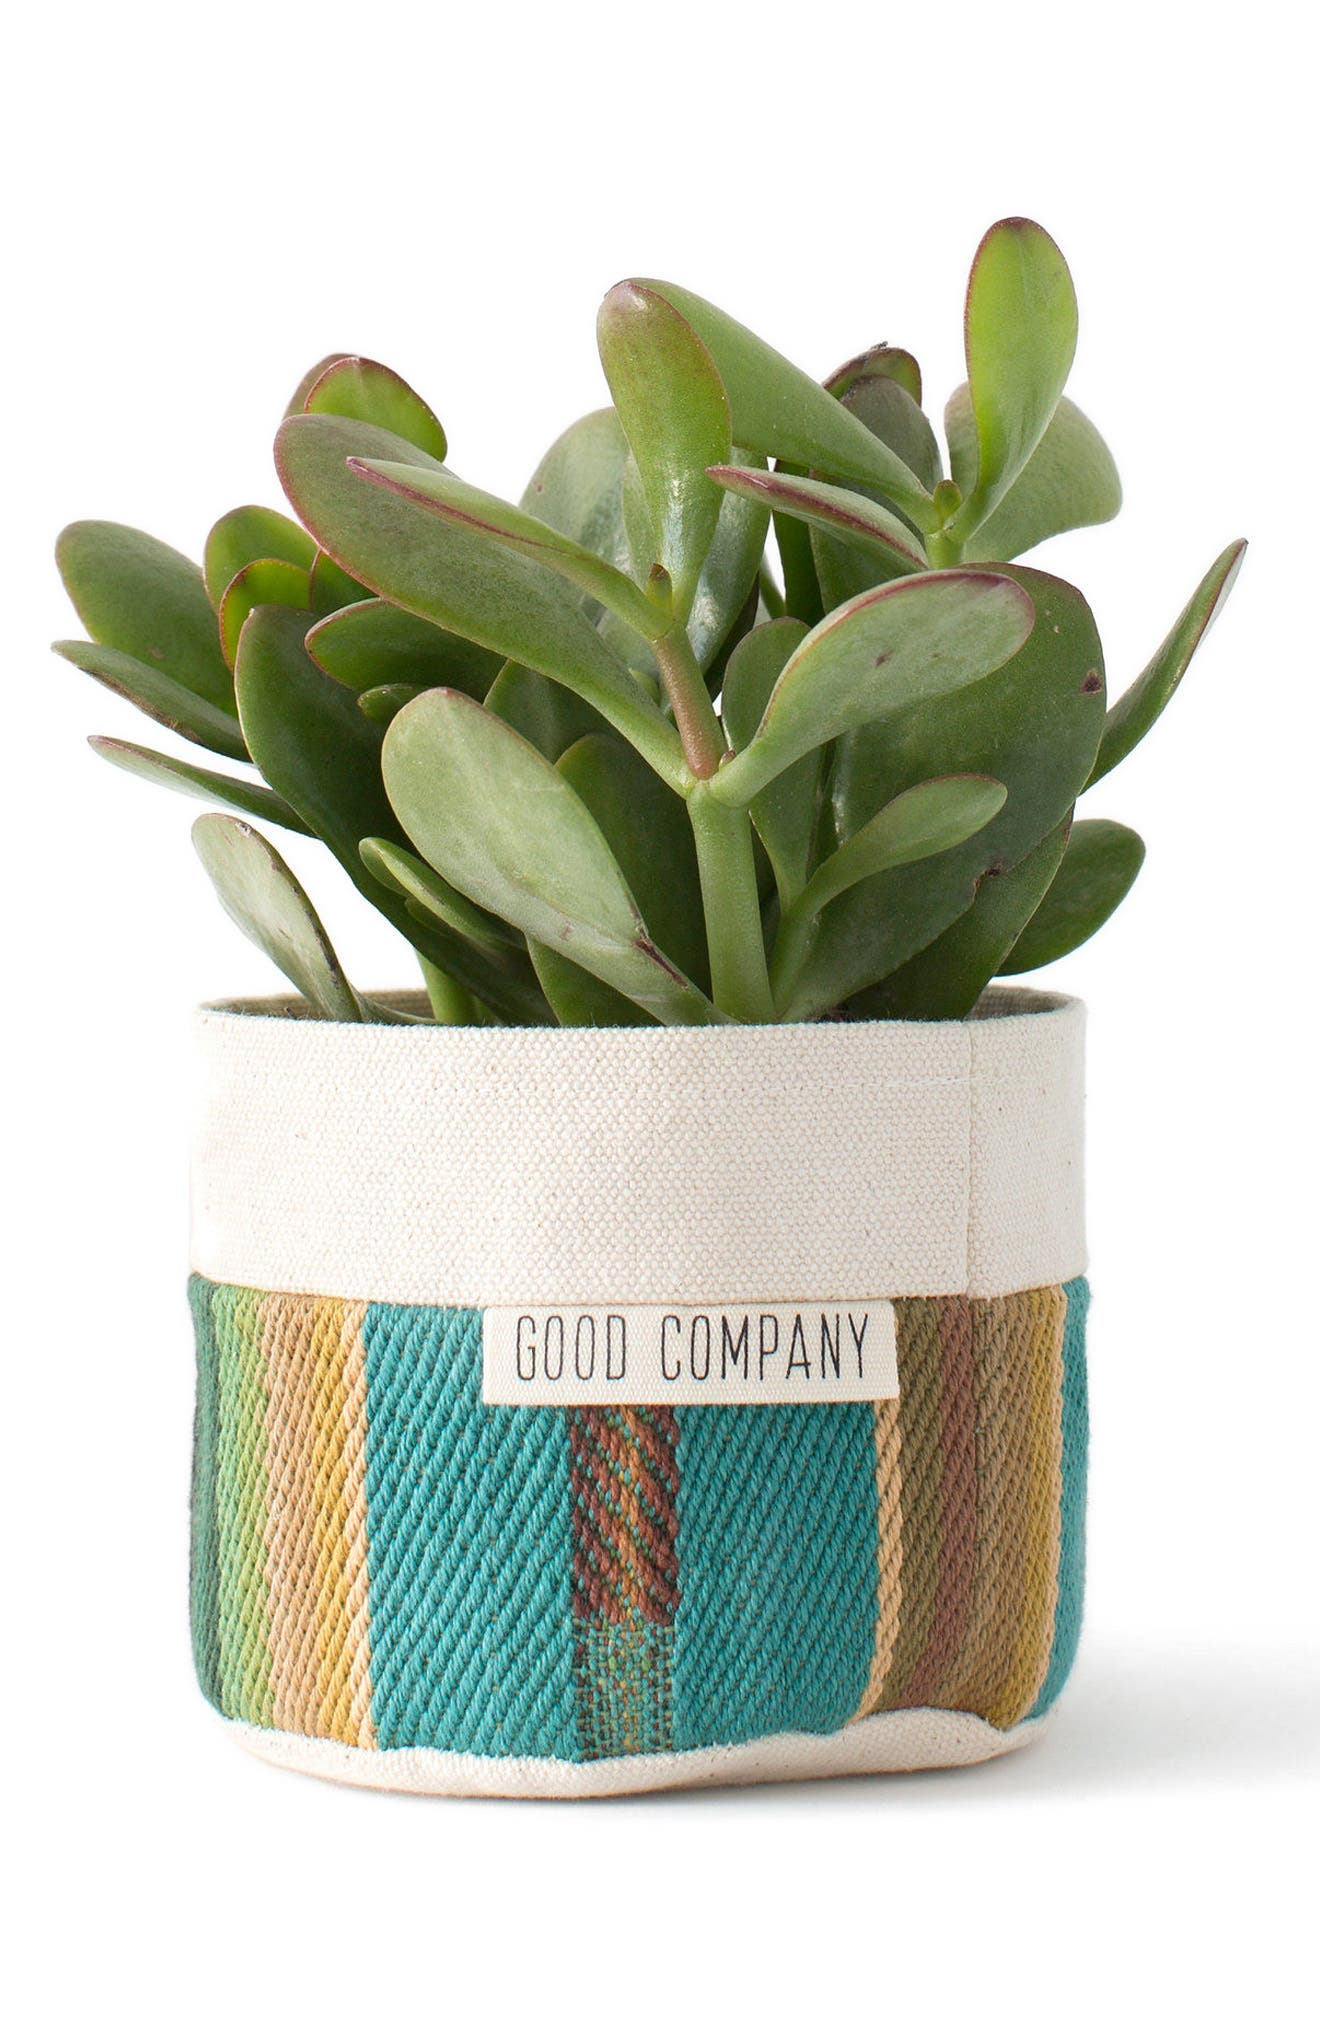 4-Inch Striped Canvas Planter,                             Alternate thumbnail 4, color,                             600